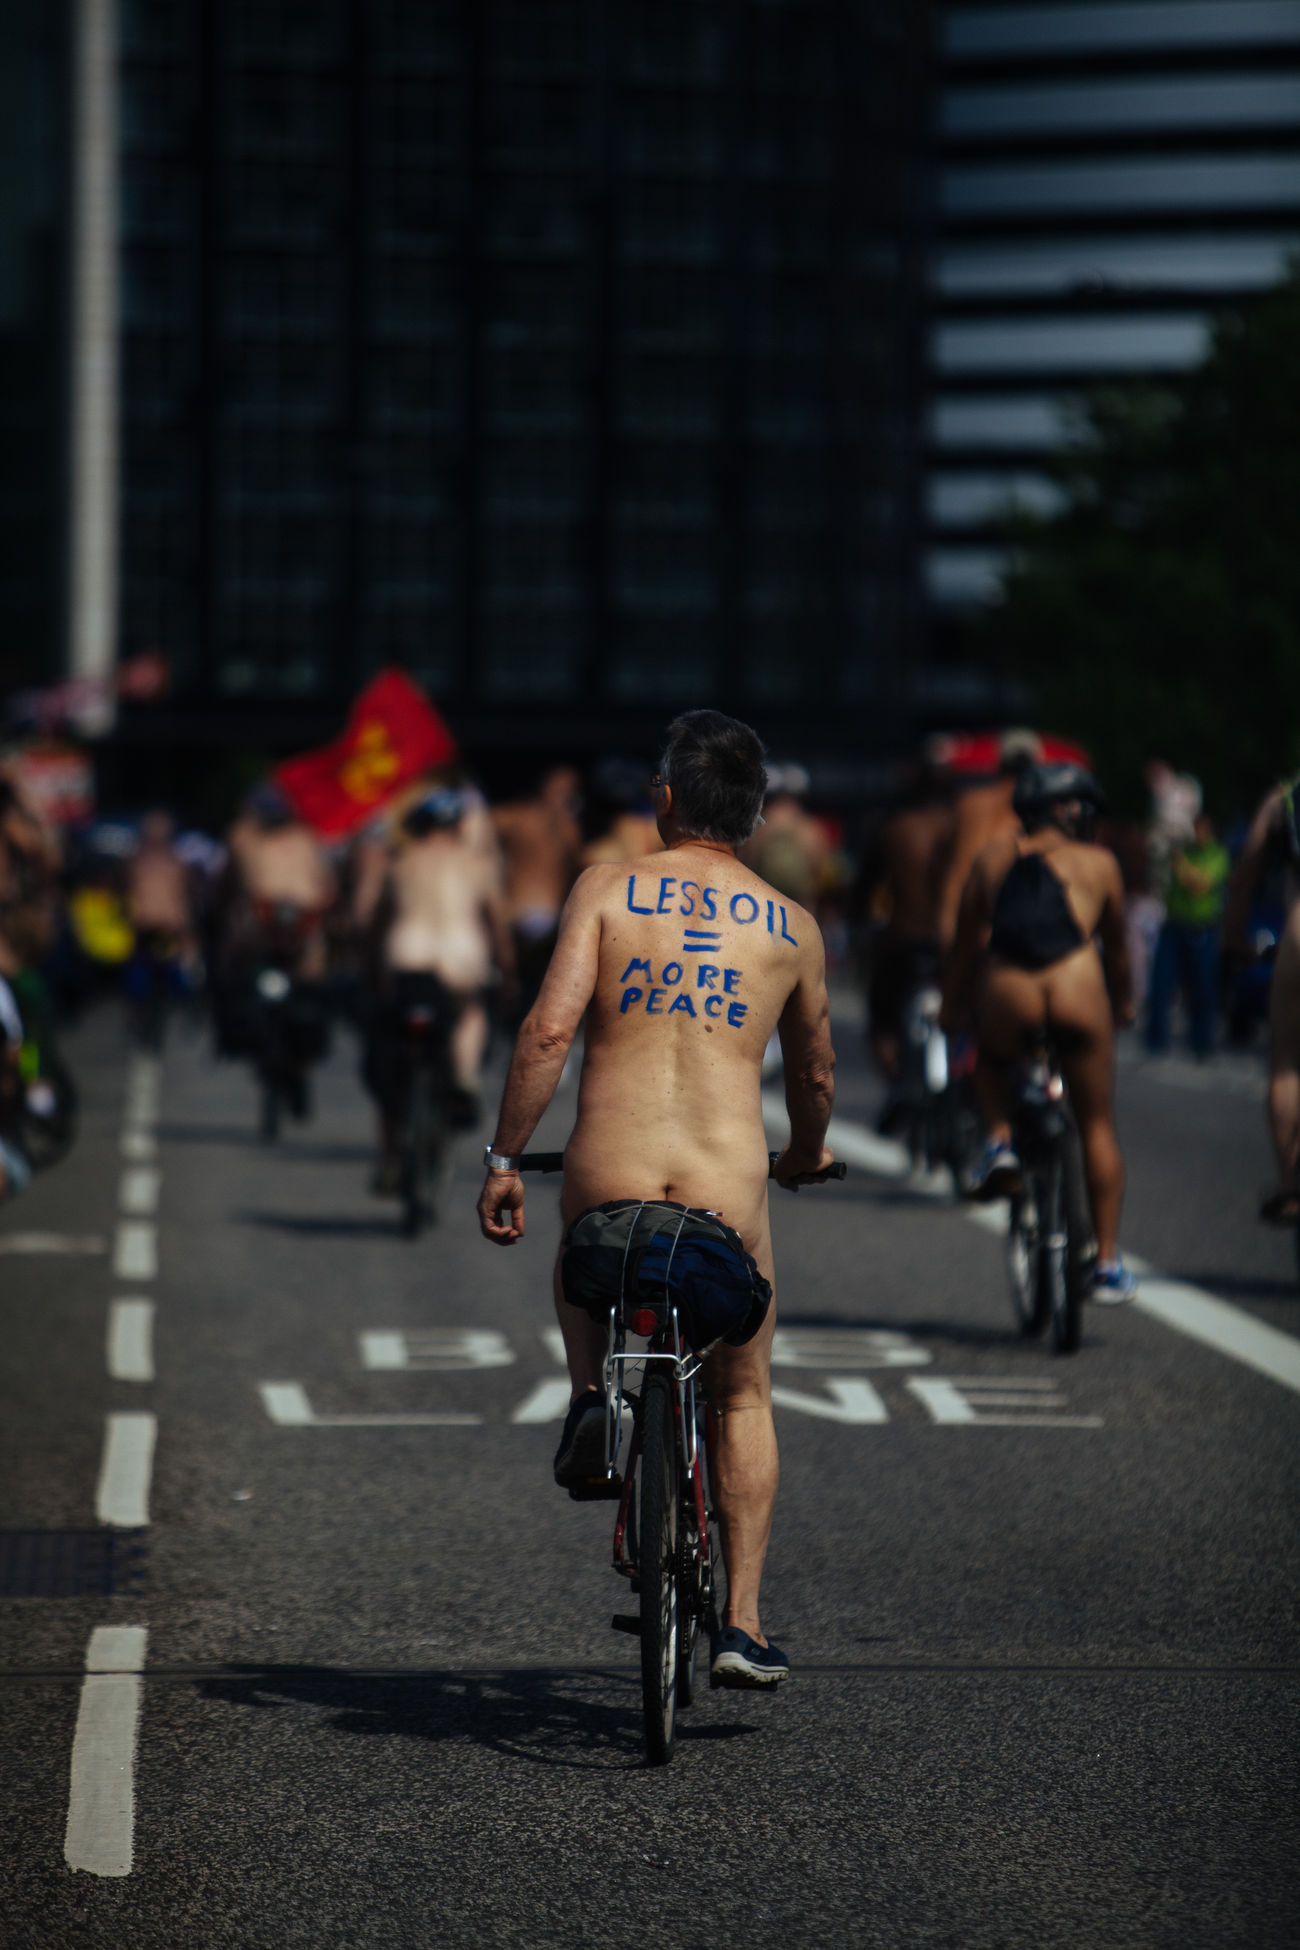 Less Oil = More Peace. Bicycle Cycling City Street Street Riding City Life City Wnbr Street Photography Happiness Cıty Maxgor Live For The Story Cıty Life Streetlife Shirtless Urbanlife Real People Rawstreets Maxgor.com Westminster Bridge, Place Of Heart The Photojournalist - 2017 EyeEm Awards The Great Outdoors - 2017 EyeEm Awards